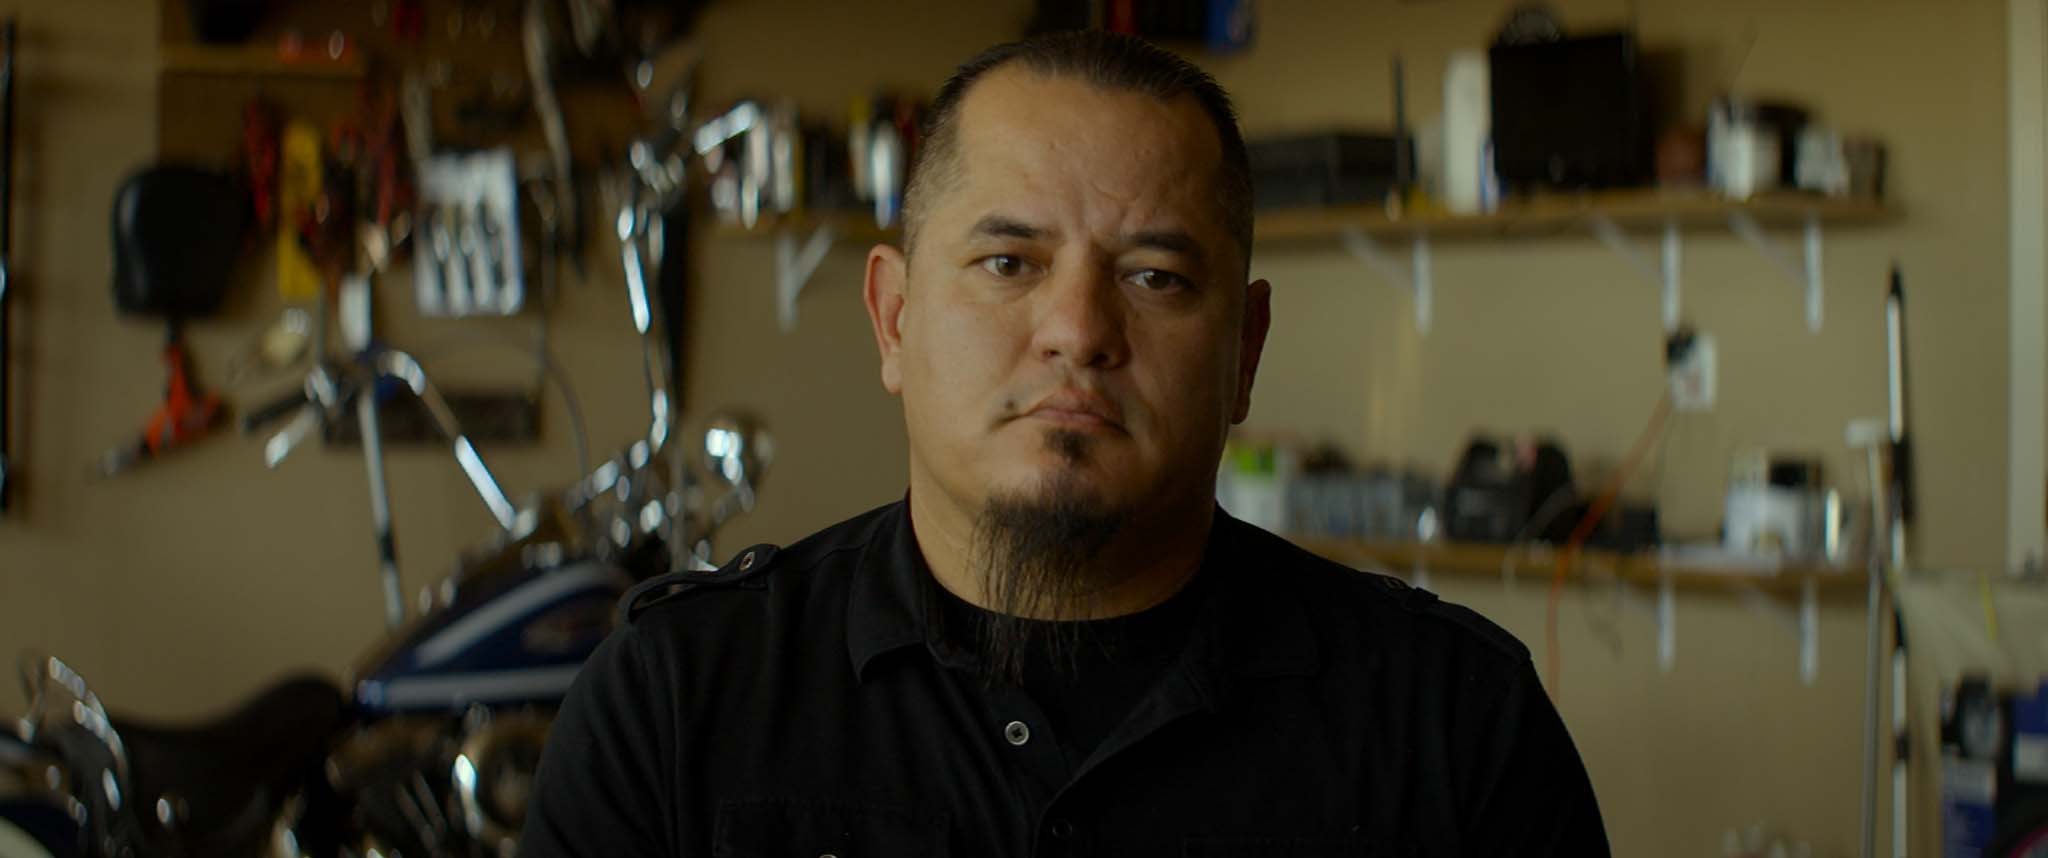 Meet the Son of an Undocumented Immigrant Who Joined the Border Patrol to Bust Mexico's Drug Cartels